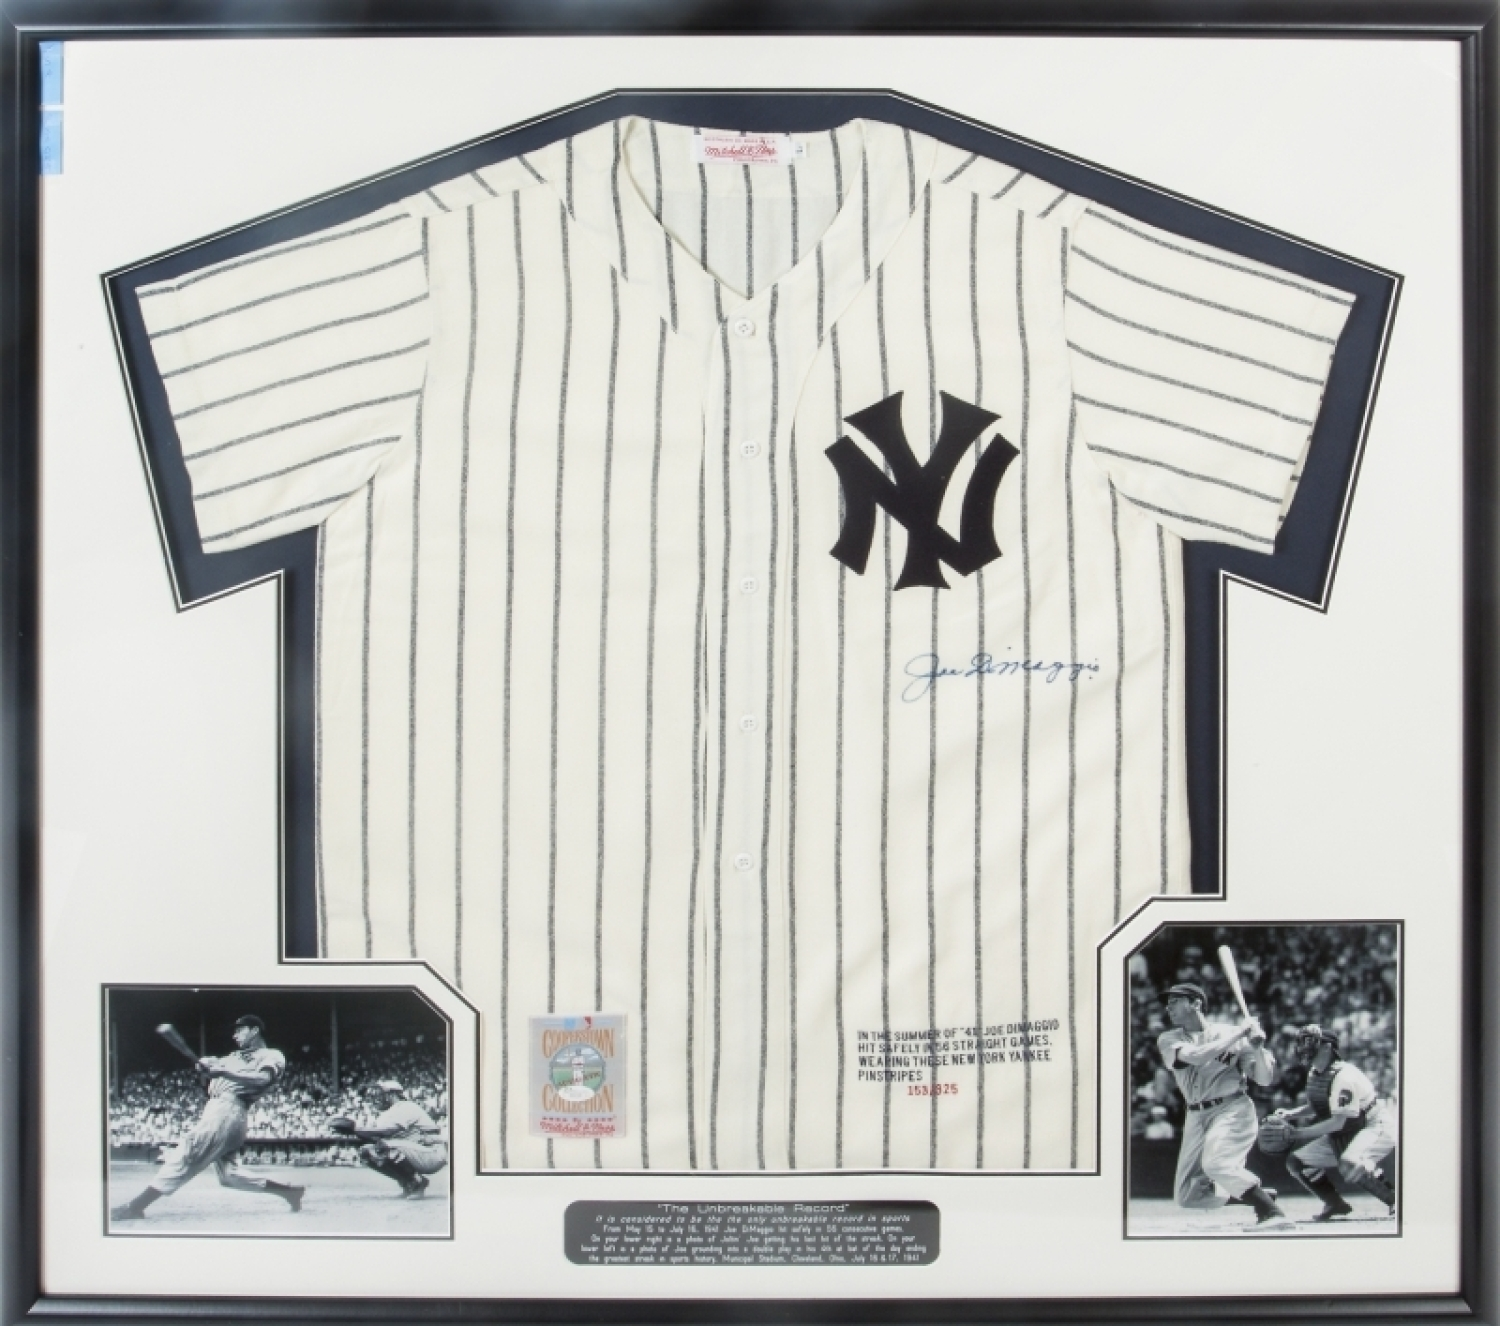 668bc84f335 Lot 26 of 495  JOE DiMAGGIO SIGNED 56-GAME HITTING STREAK LIMITED EDITION  NEW YORK YANKEES JERSEY